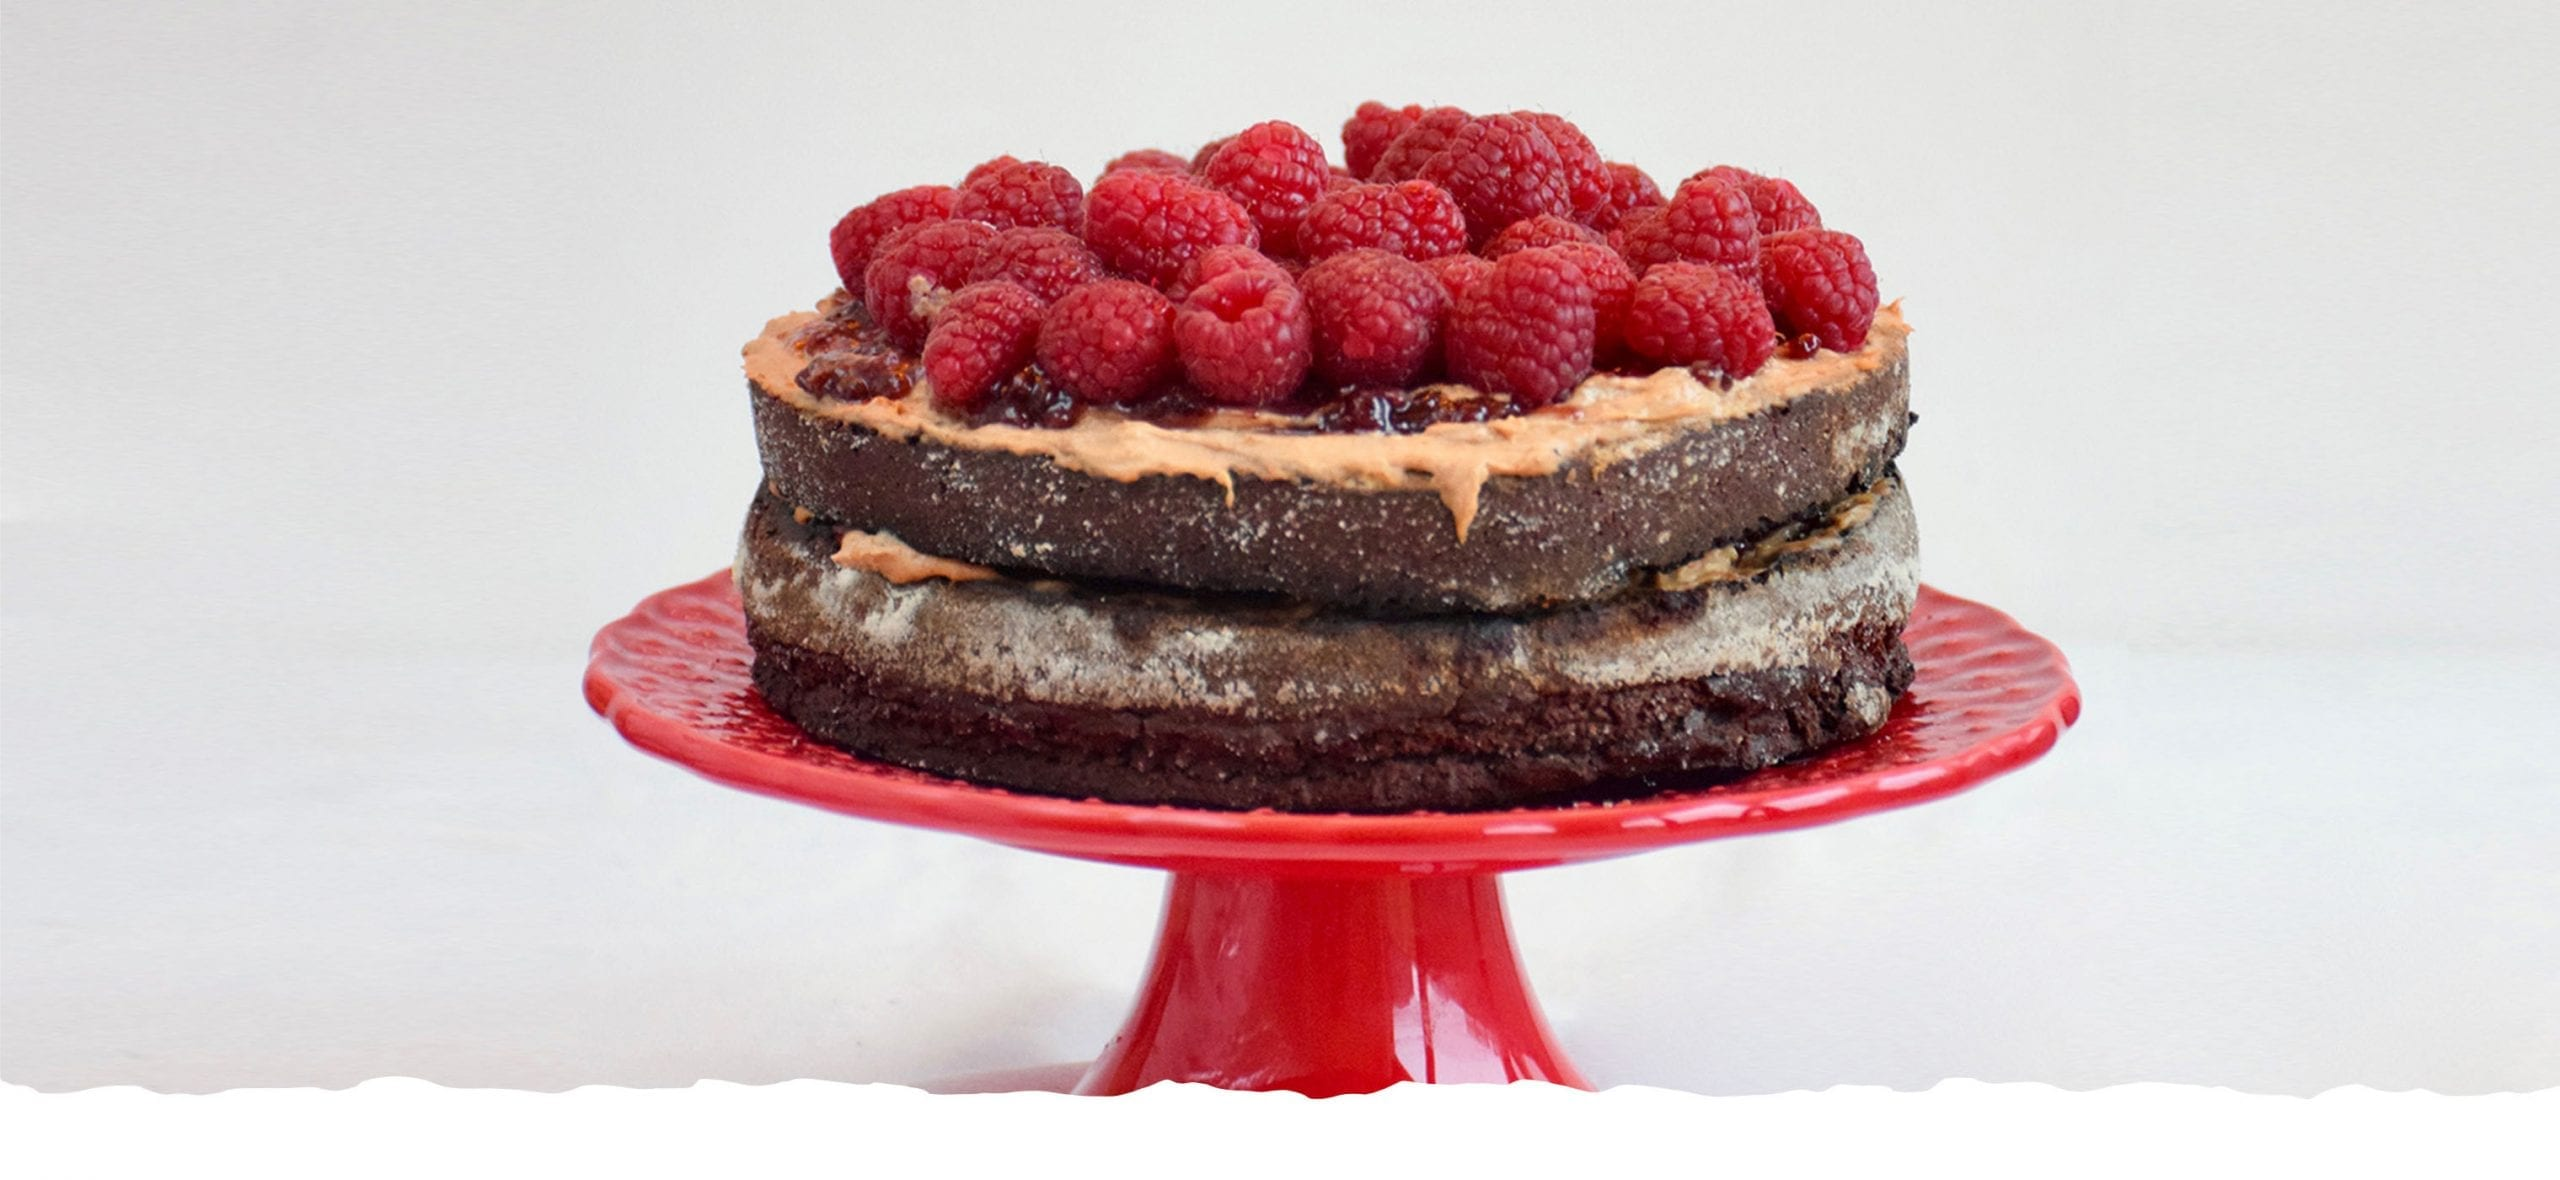 Peanut Butter Cake with Wild Berries Jam